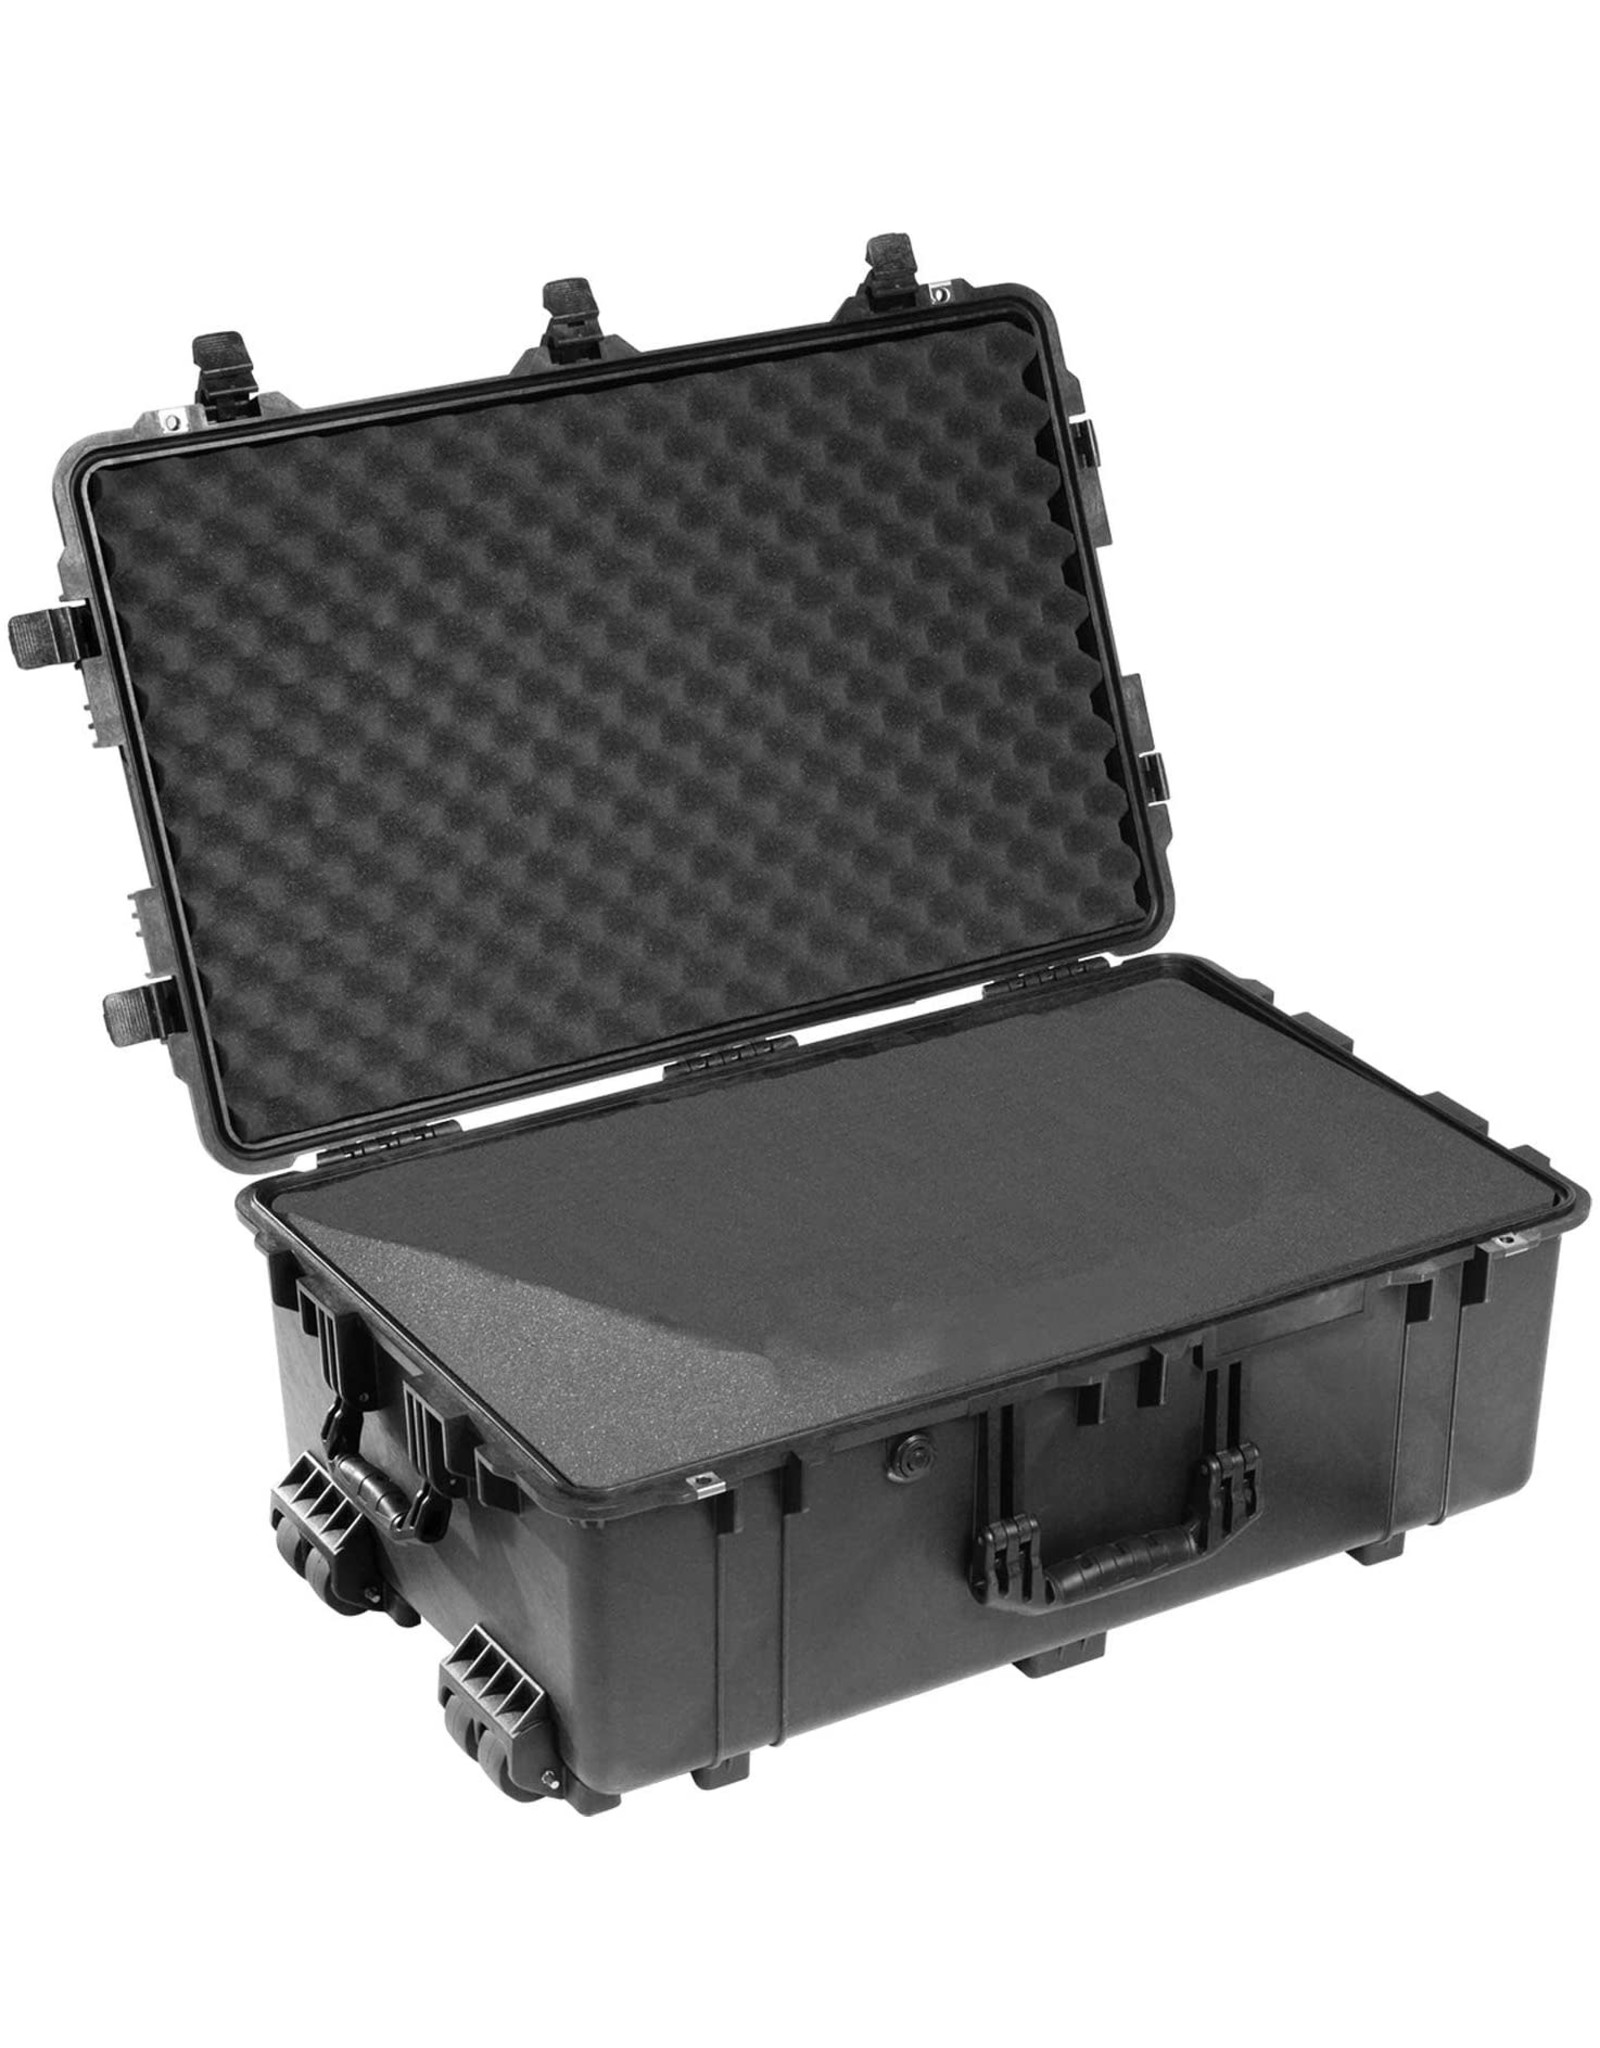 Pelican Pelican 1650 Case with Foam